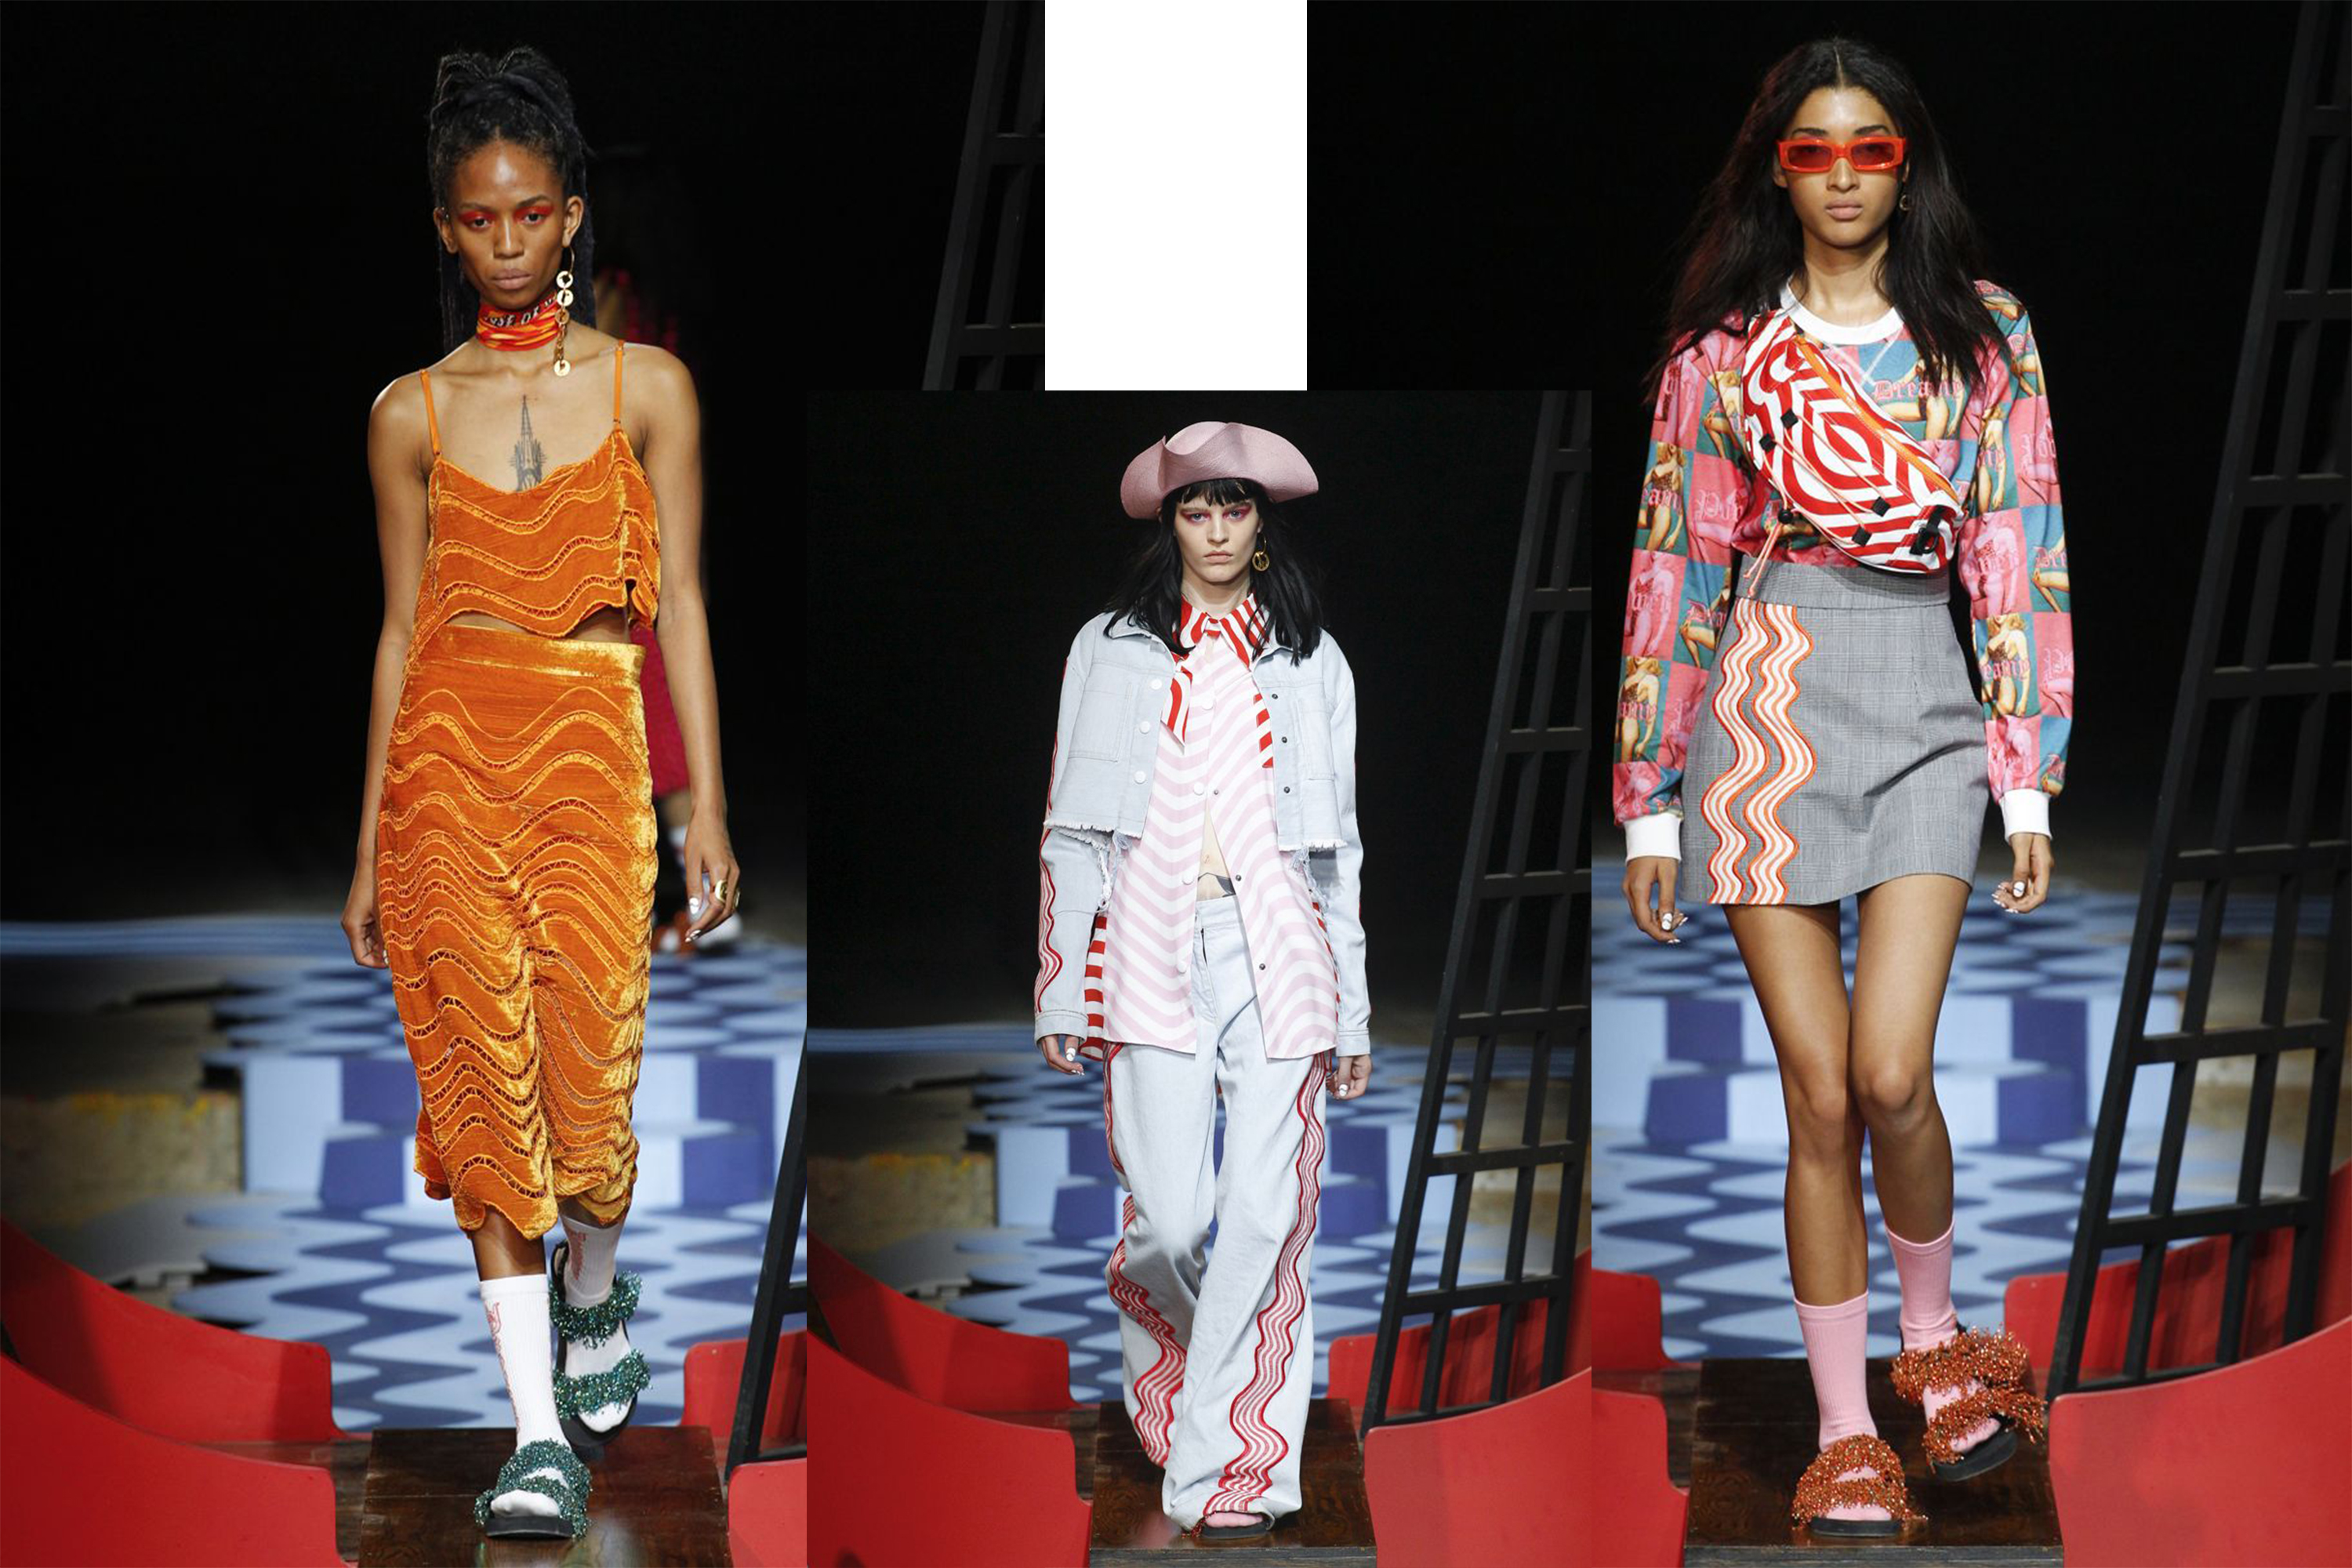 MEGAN ELLABY REVIEWS THE HOUSE OF HOLLAND SS18 ORIGINAL PIRATE MATERIAL AT LFW